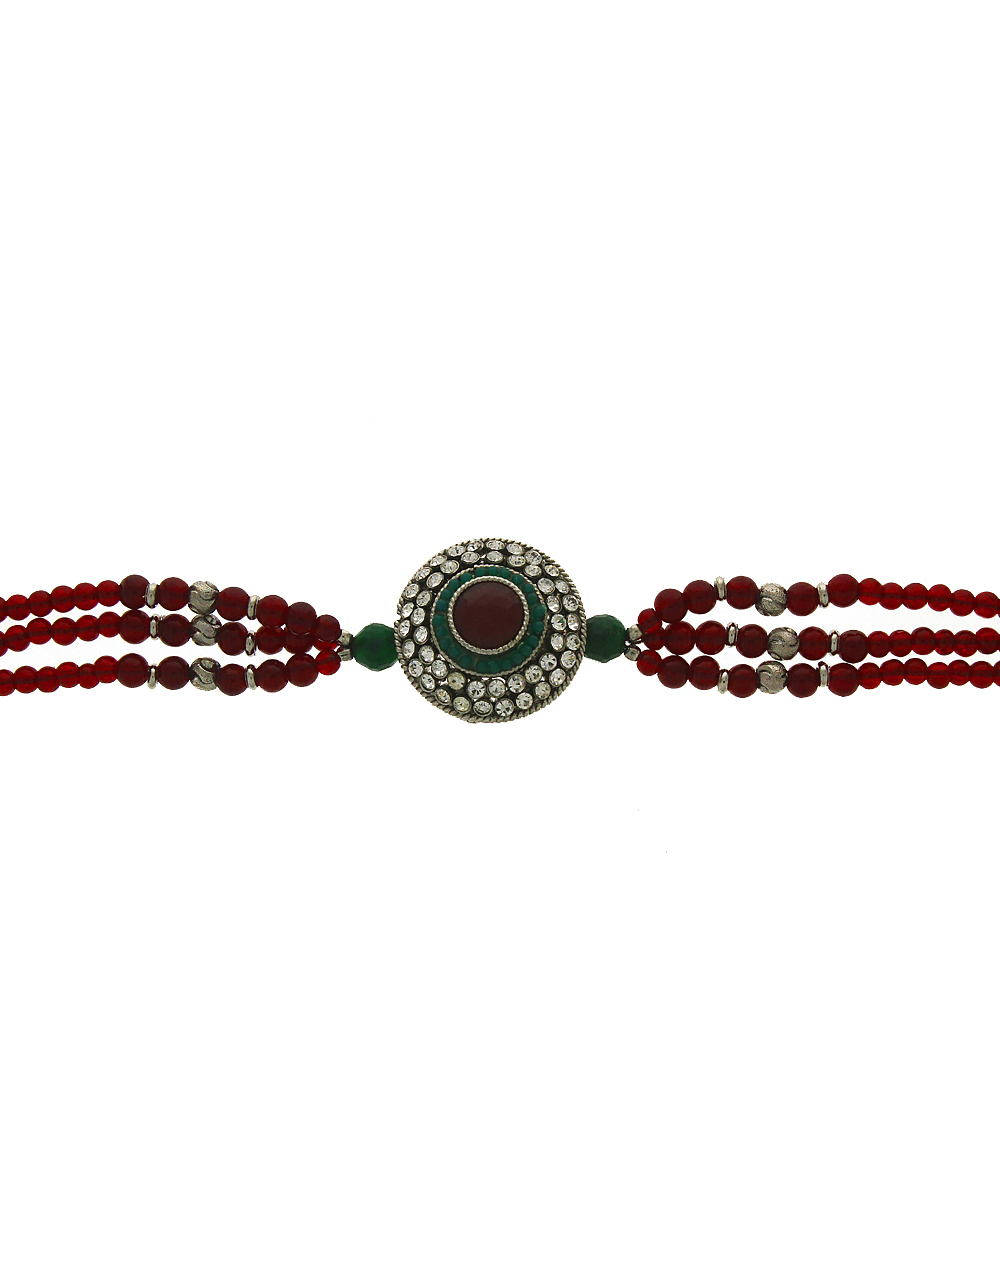 Beaded Bajuband in Classic Look for Women